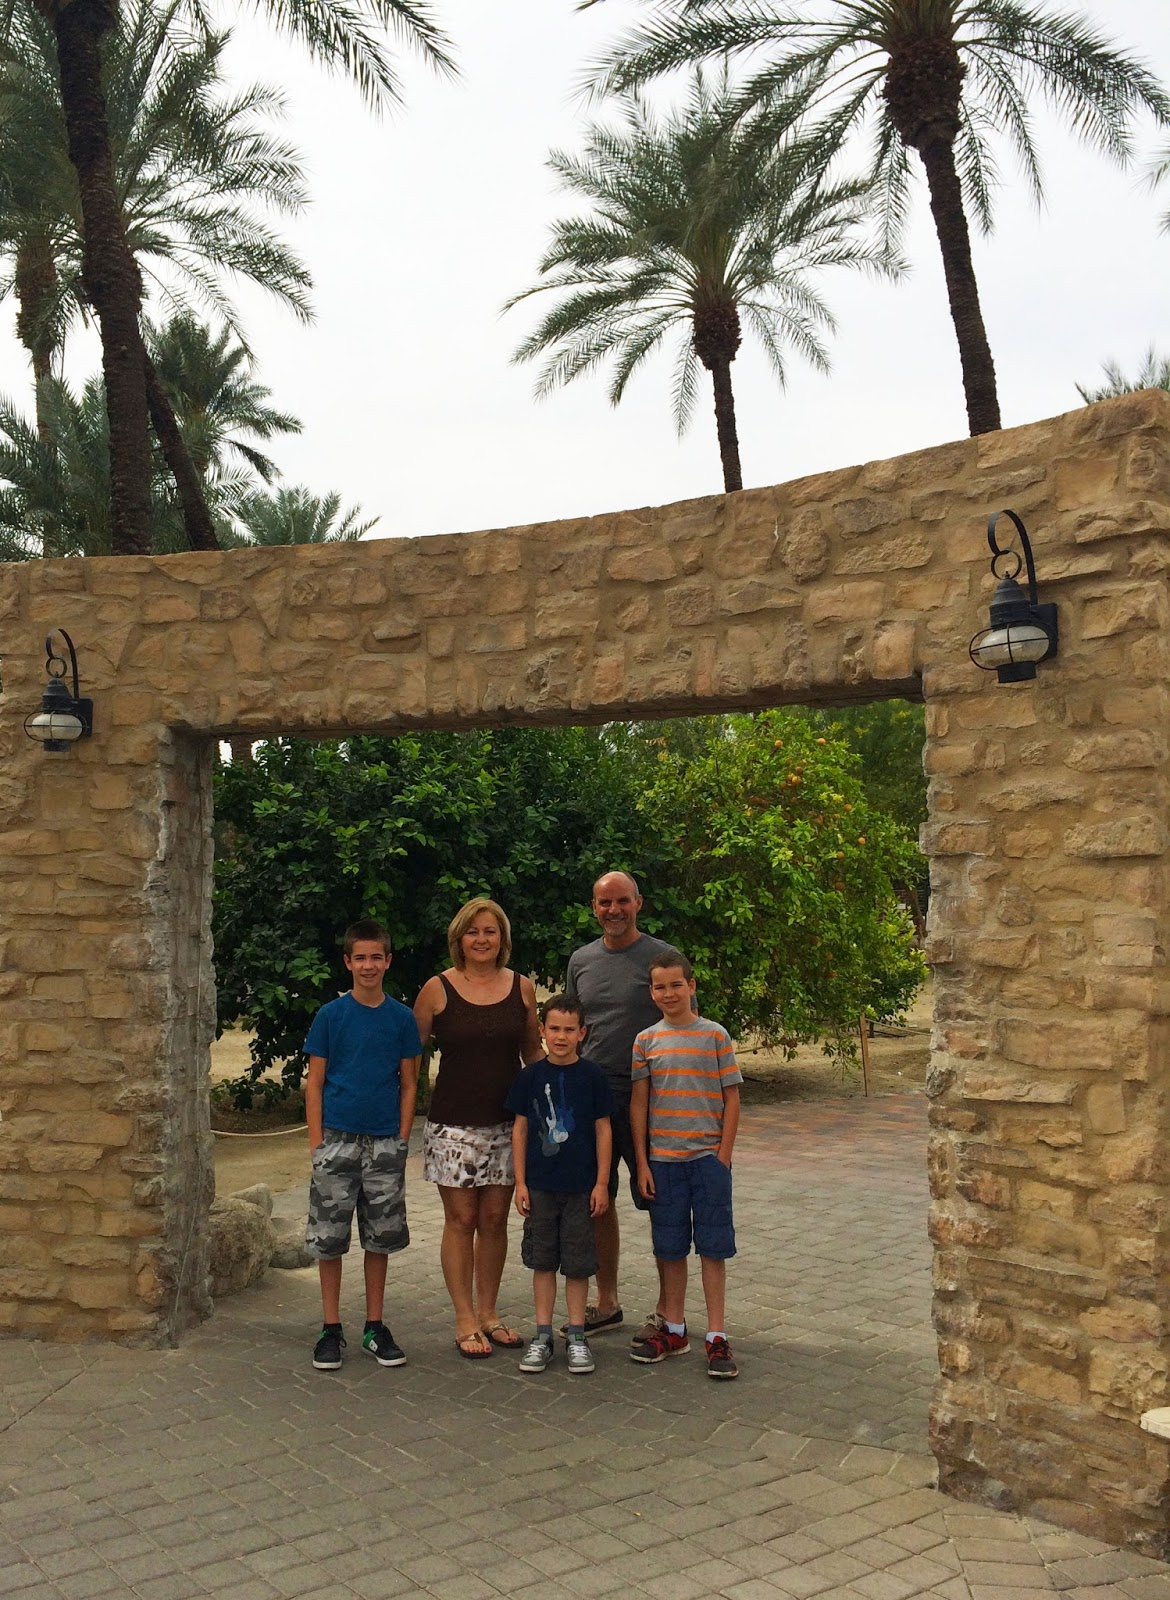 Dating in palm springs